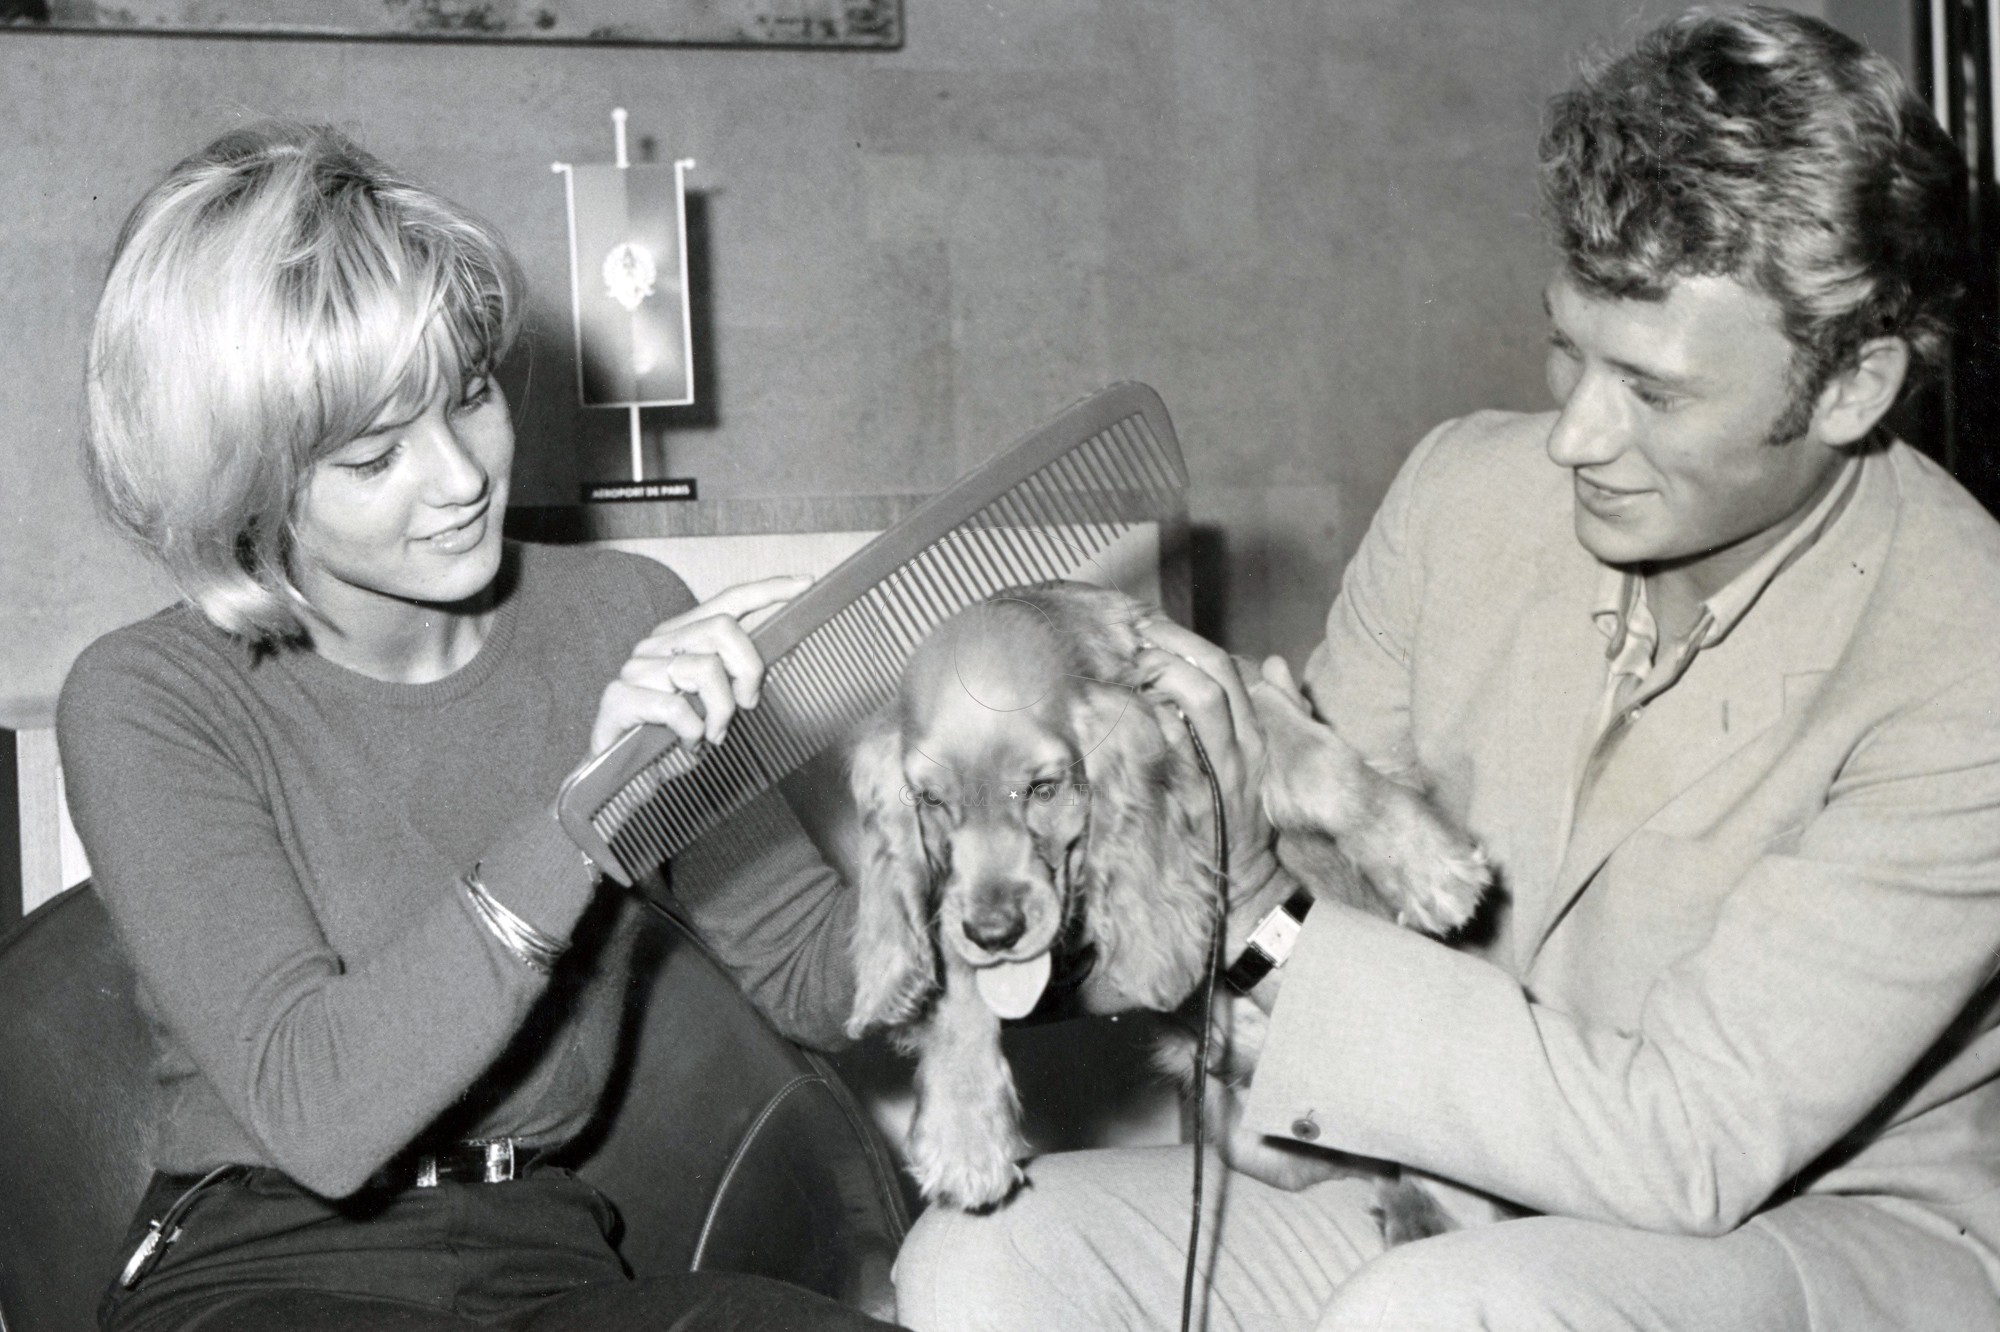 ARCHIVES  - Oct 16, 1971 - Paris, France - SYLVIE VARTAN and JOHNNY HALLYDAY with their cocker spaniel at Orly Airport after they arrived from the US.  |